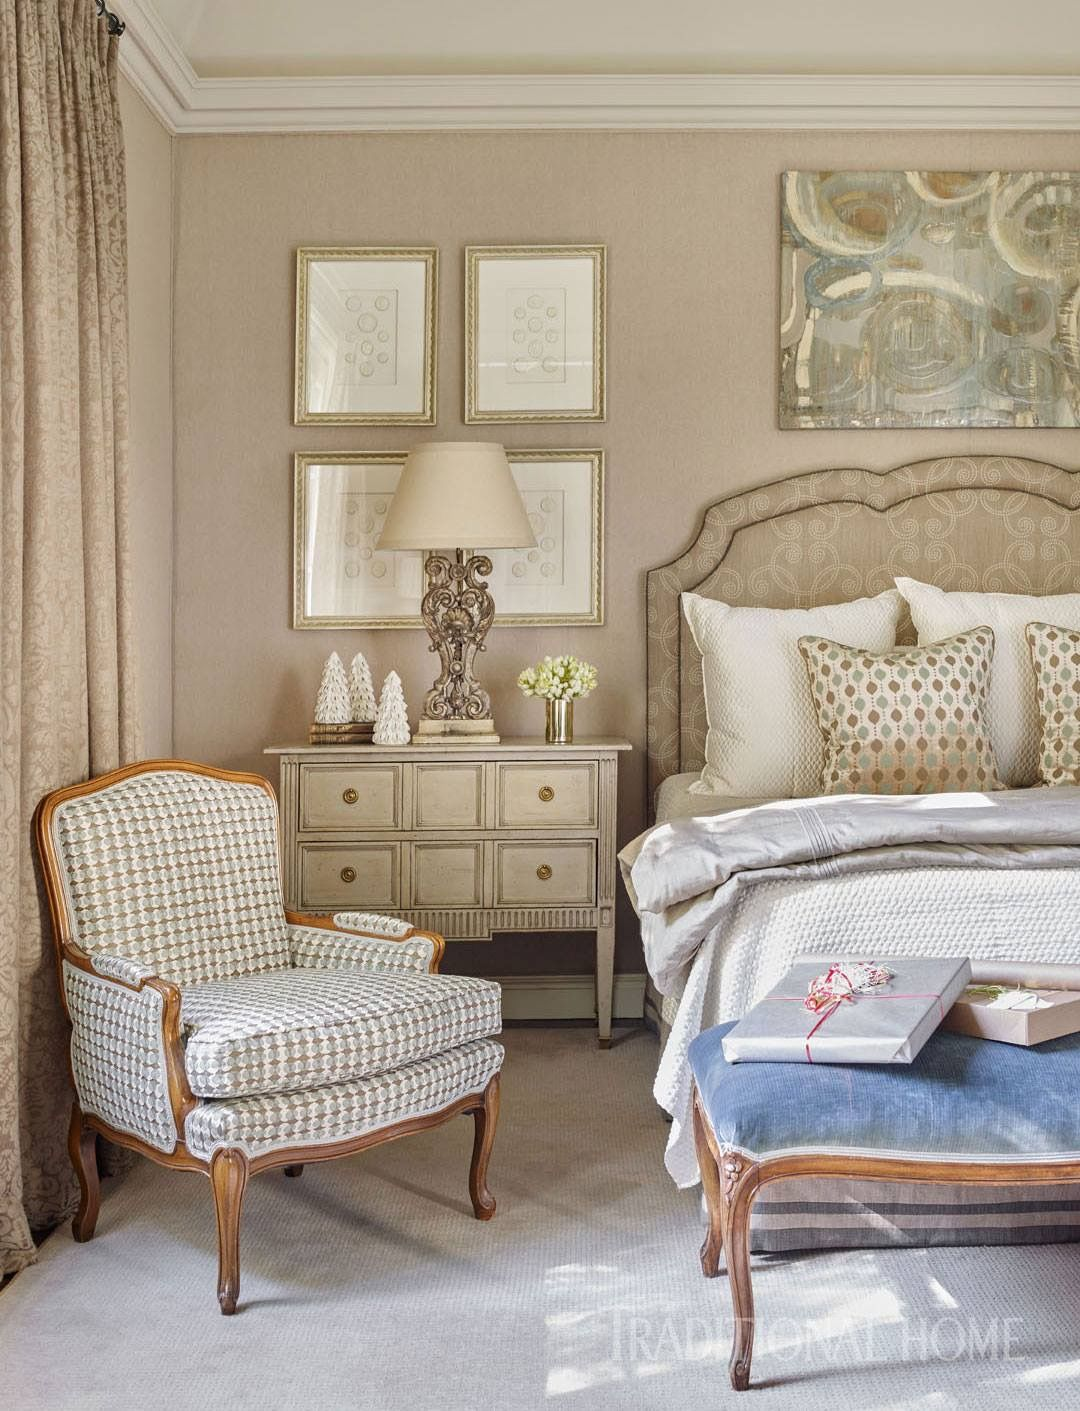 Pin by Rawia Fayed on lovely bedrooms Traditional